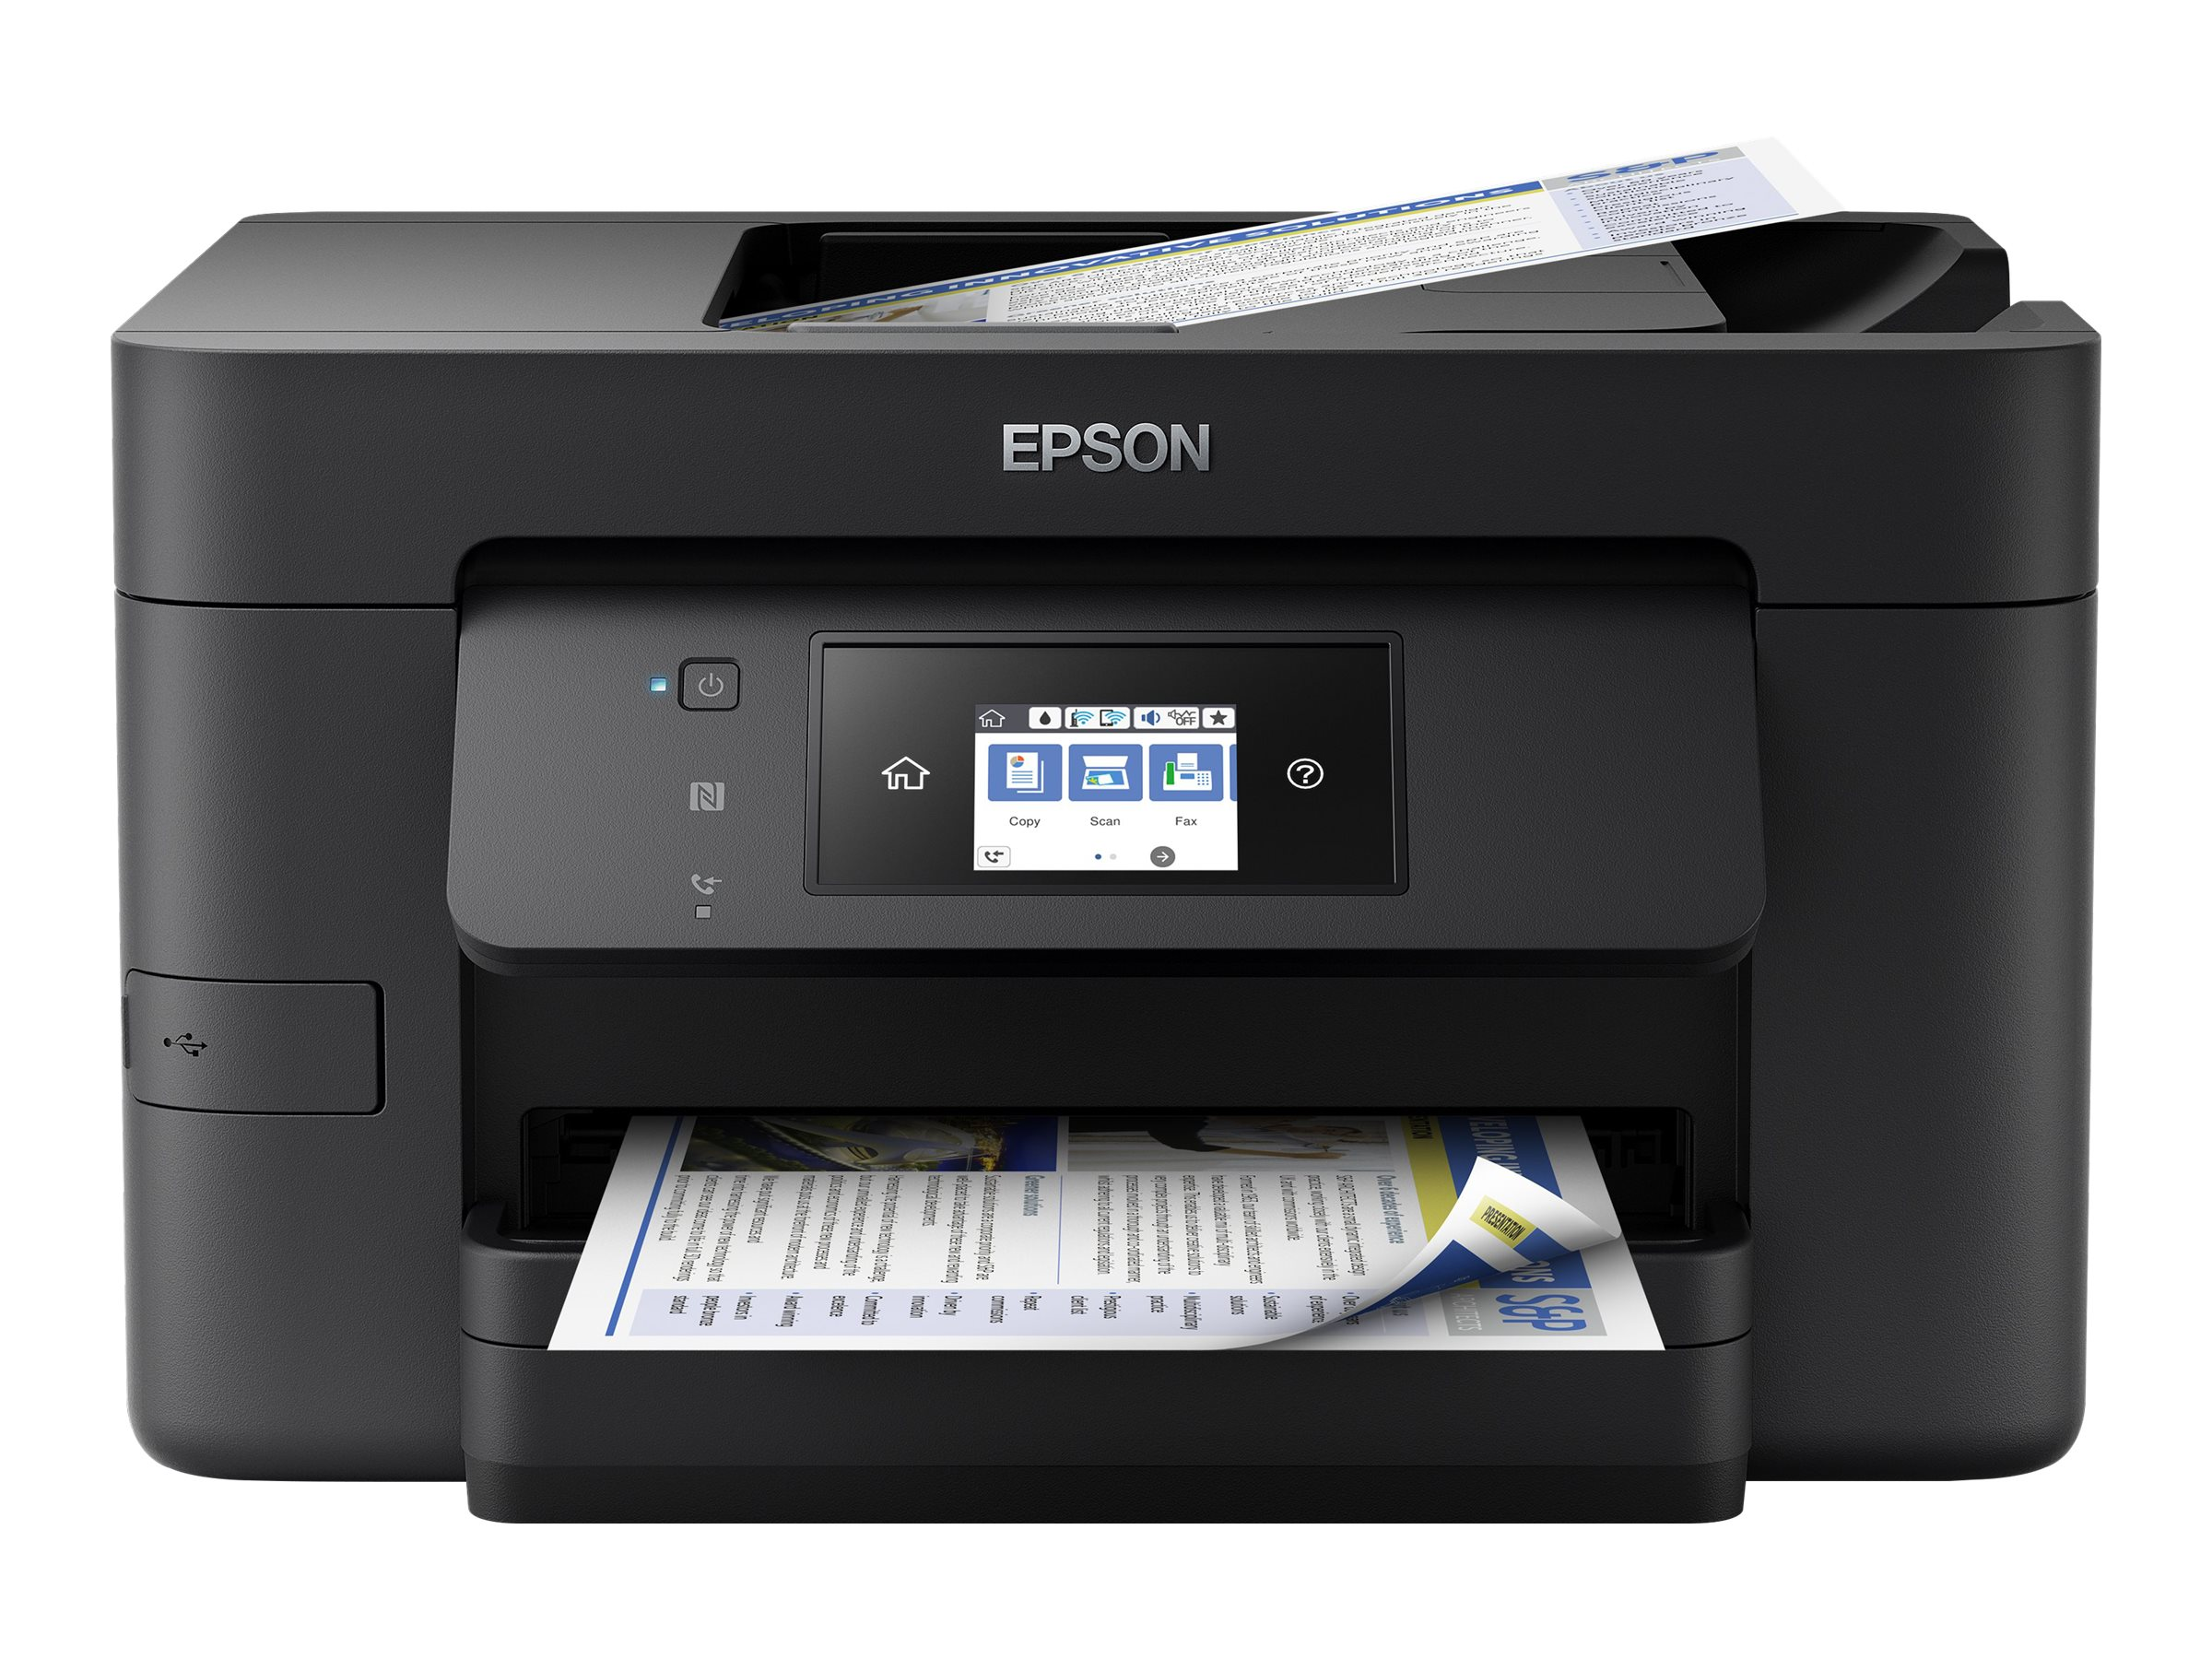 epson workforce pro wf 3720dwf imprimante multifonctions couleur imprimantes jet d 39 encre. Black Bedroom Furniture Sets. Home Design Ideas